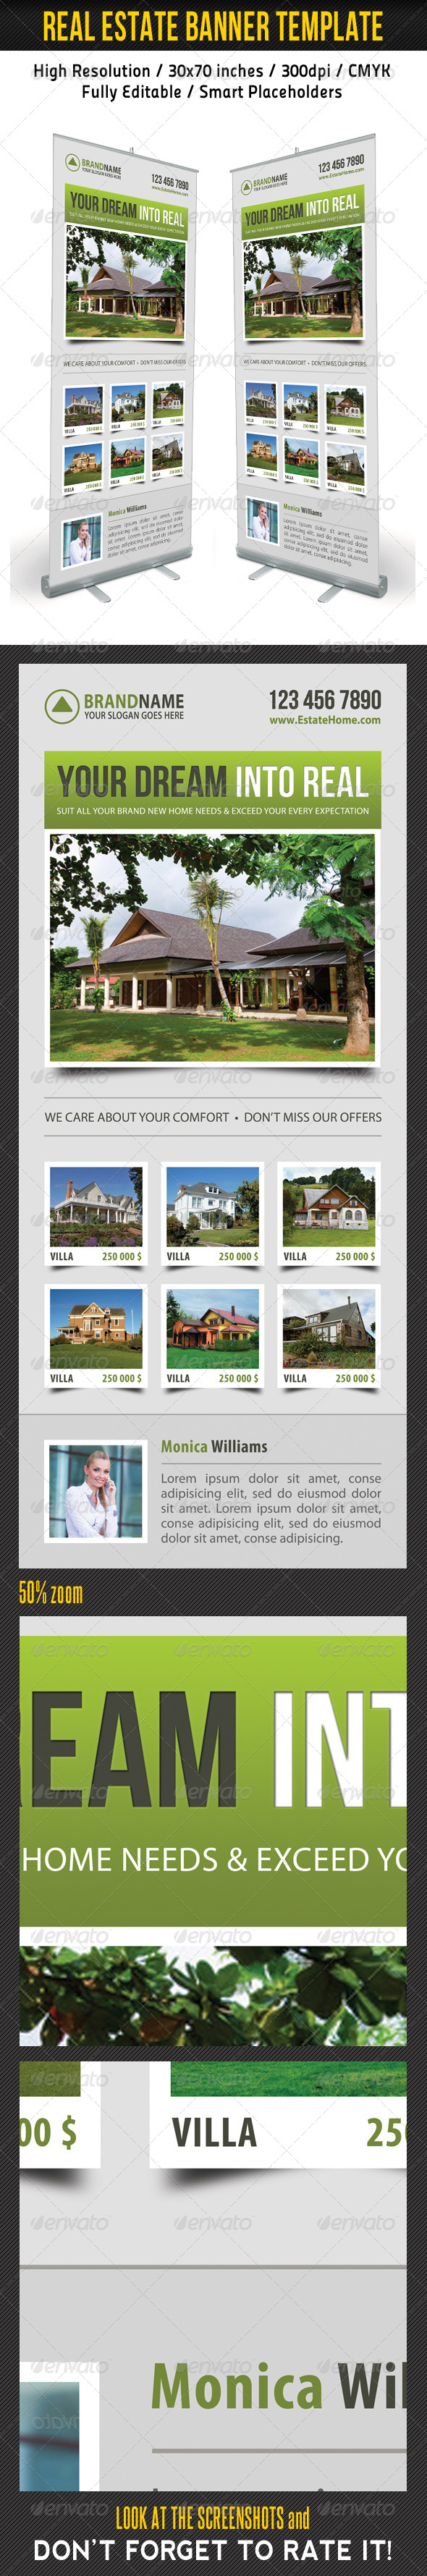 GraphicRiver Real Estate Banner Template 08 7328016